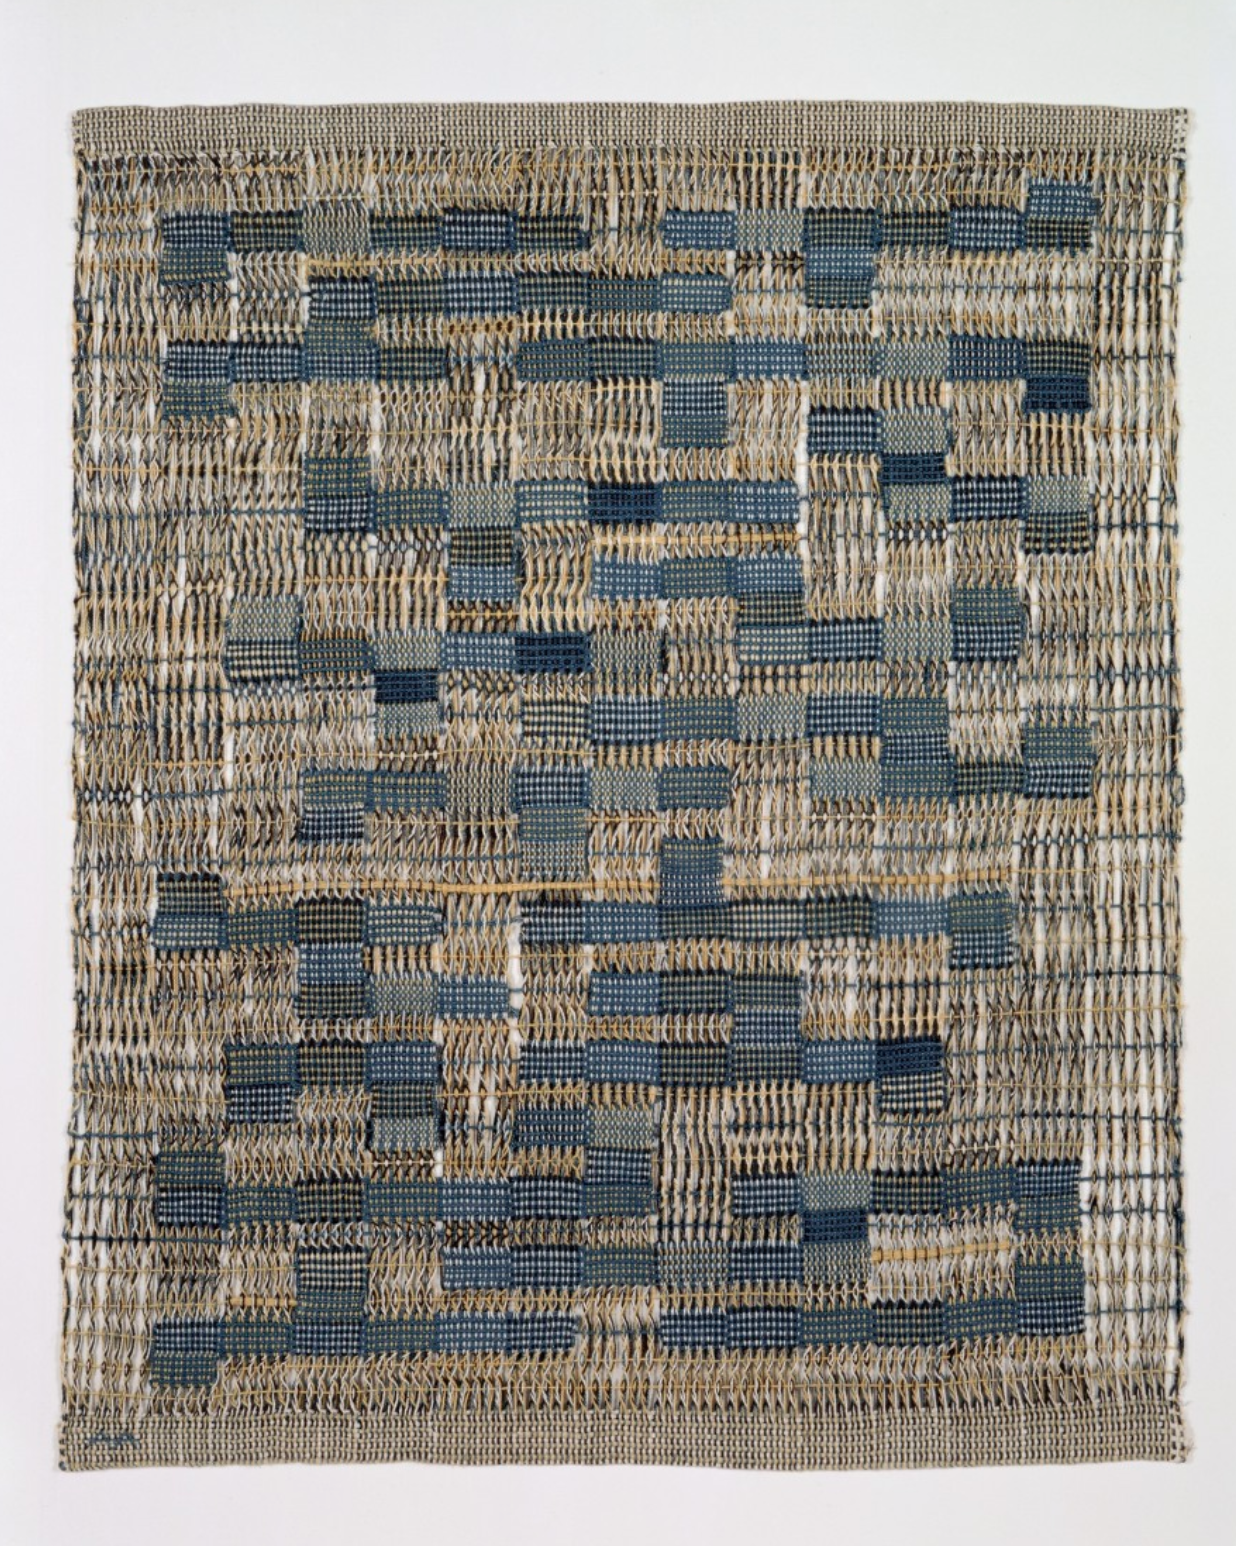 Anni Albers woven swatch